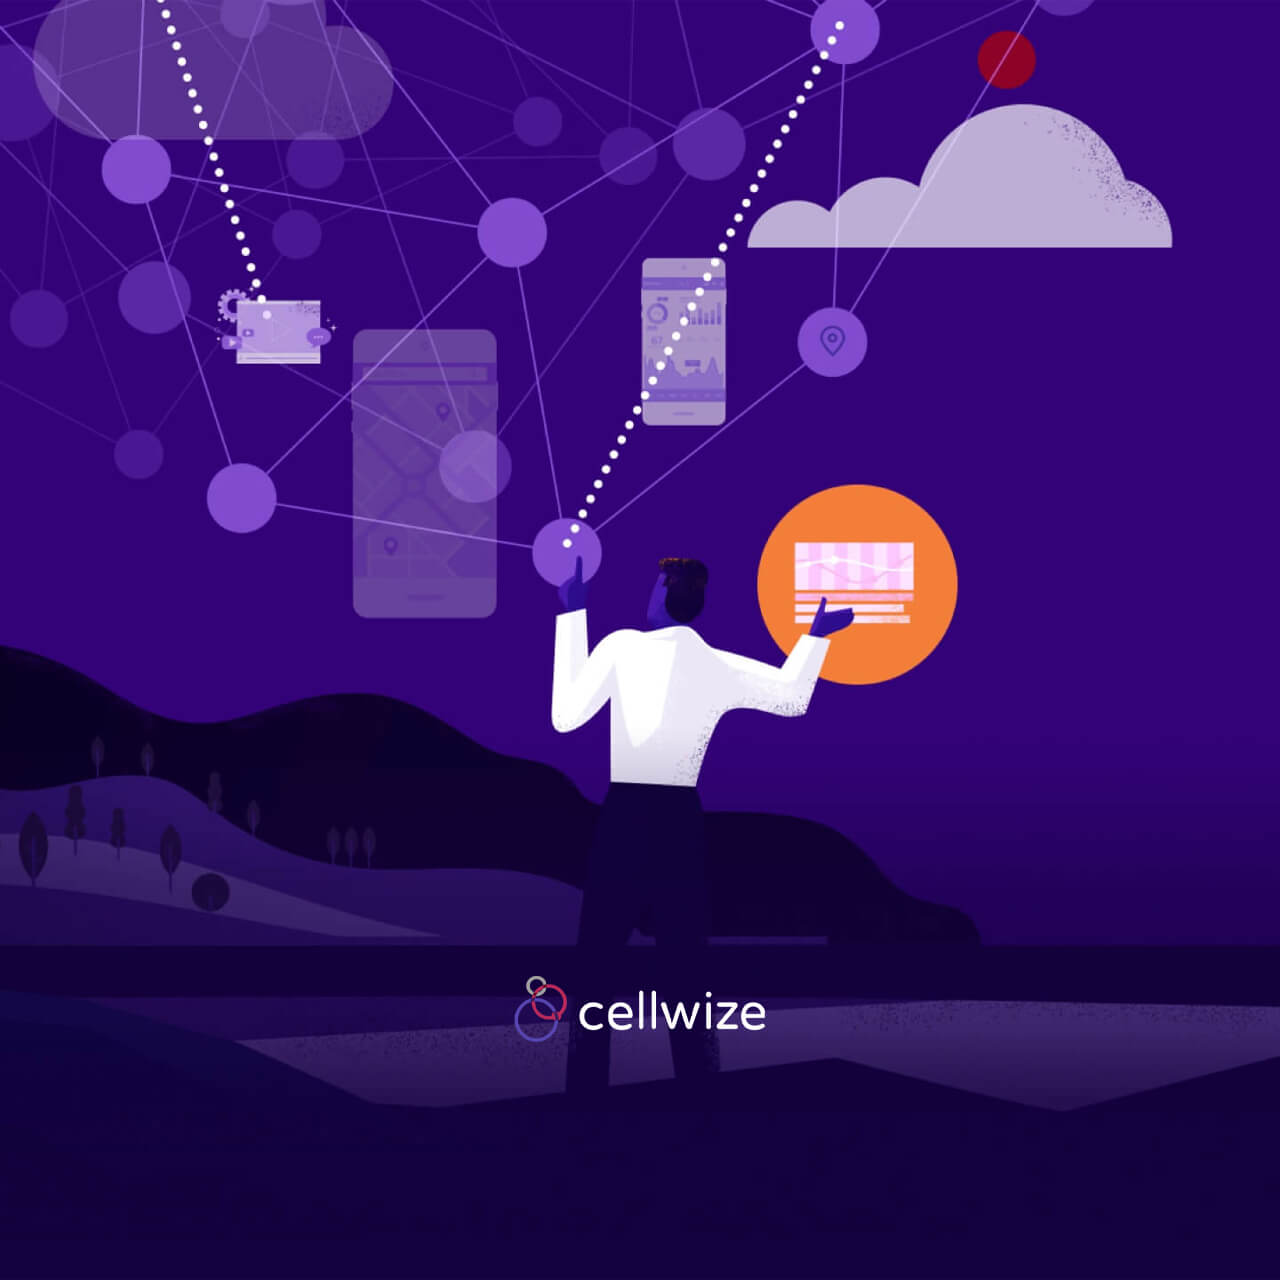 cellwize-featured-image (4)